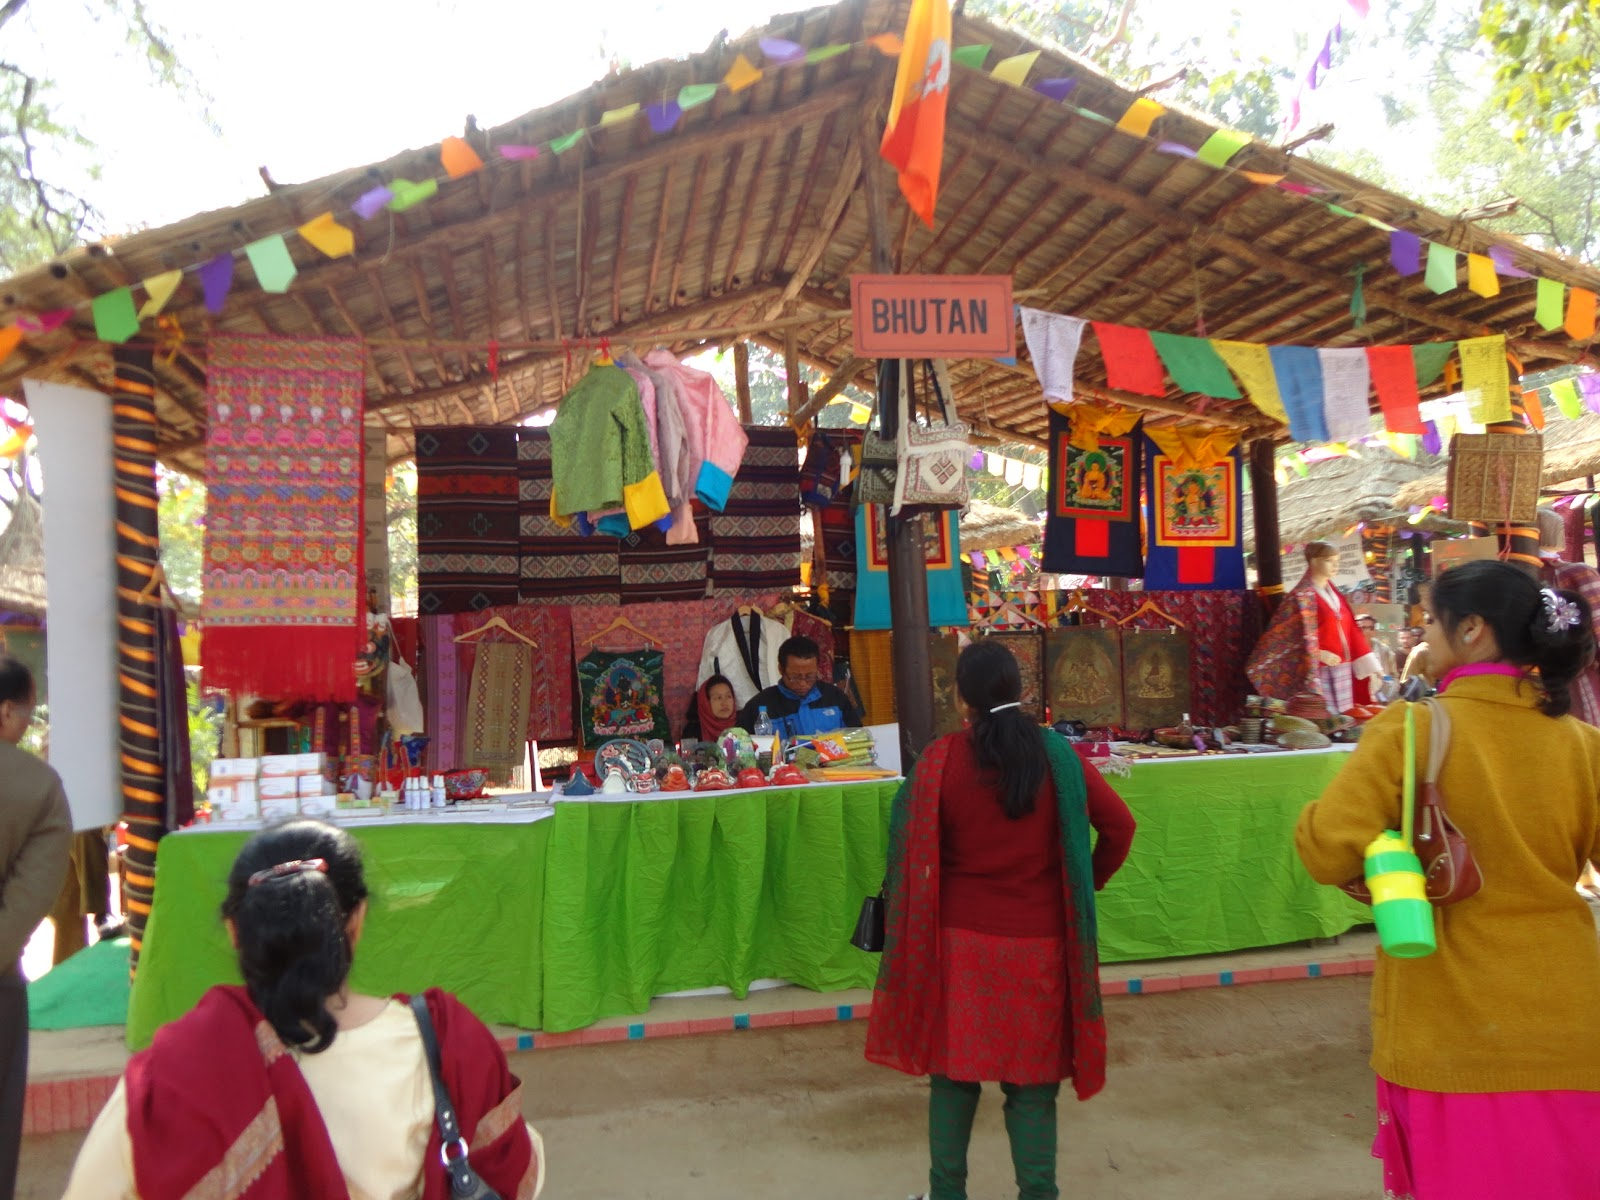 The Bhutan Stall at Surajkund Crafts Mela, India